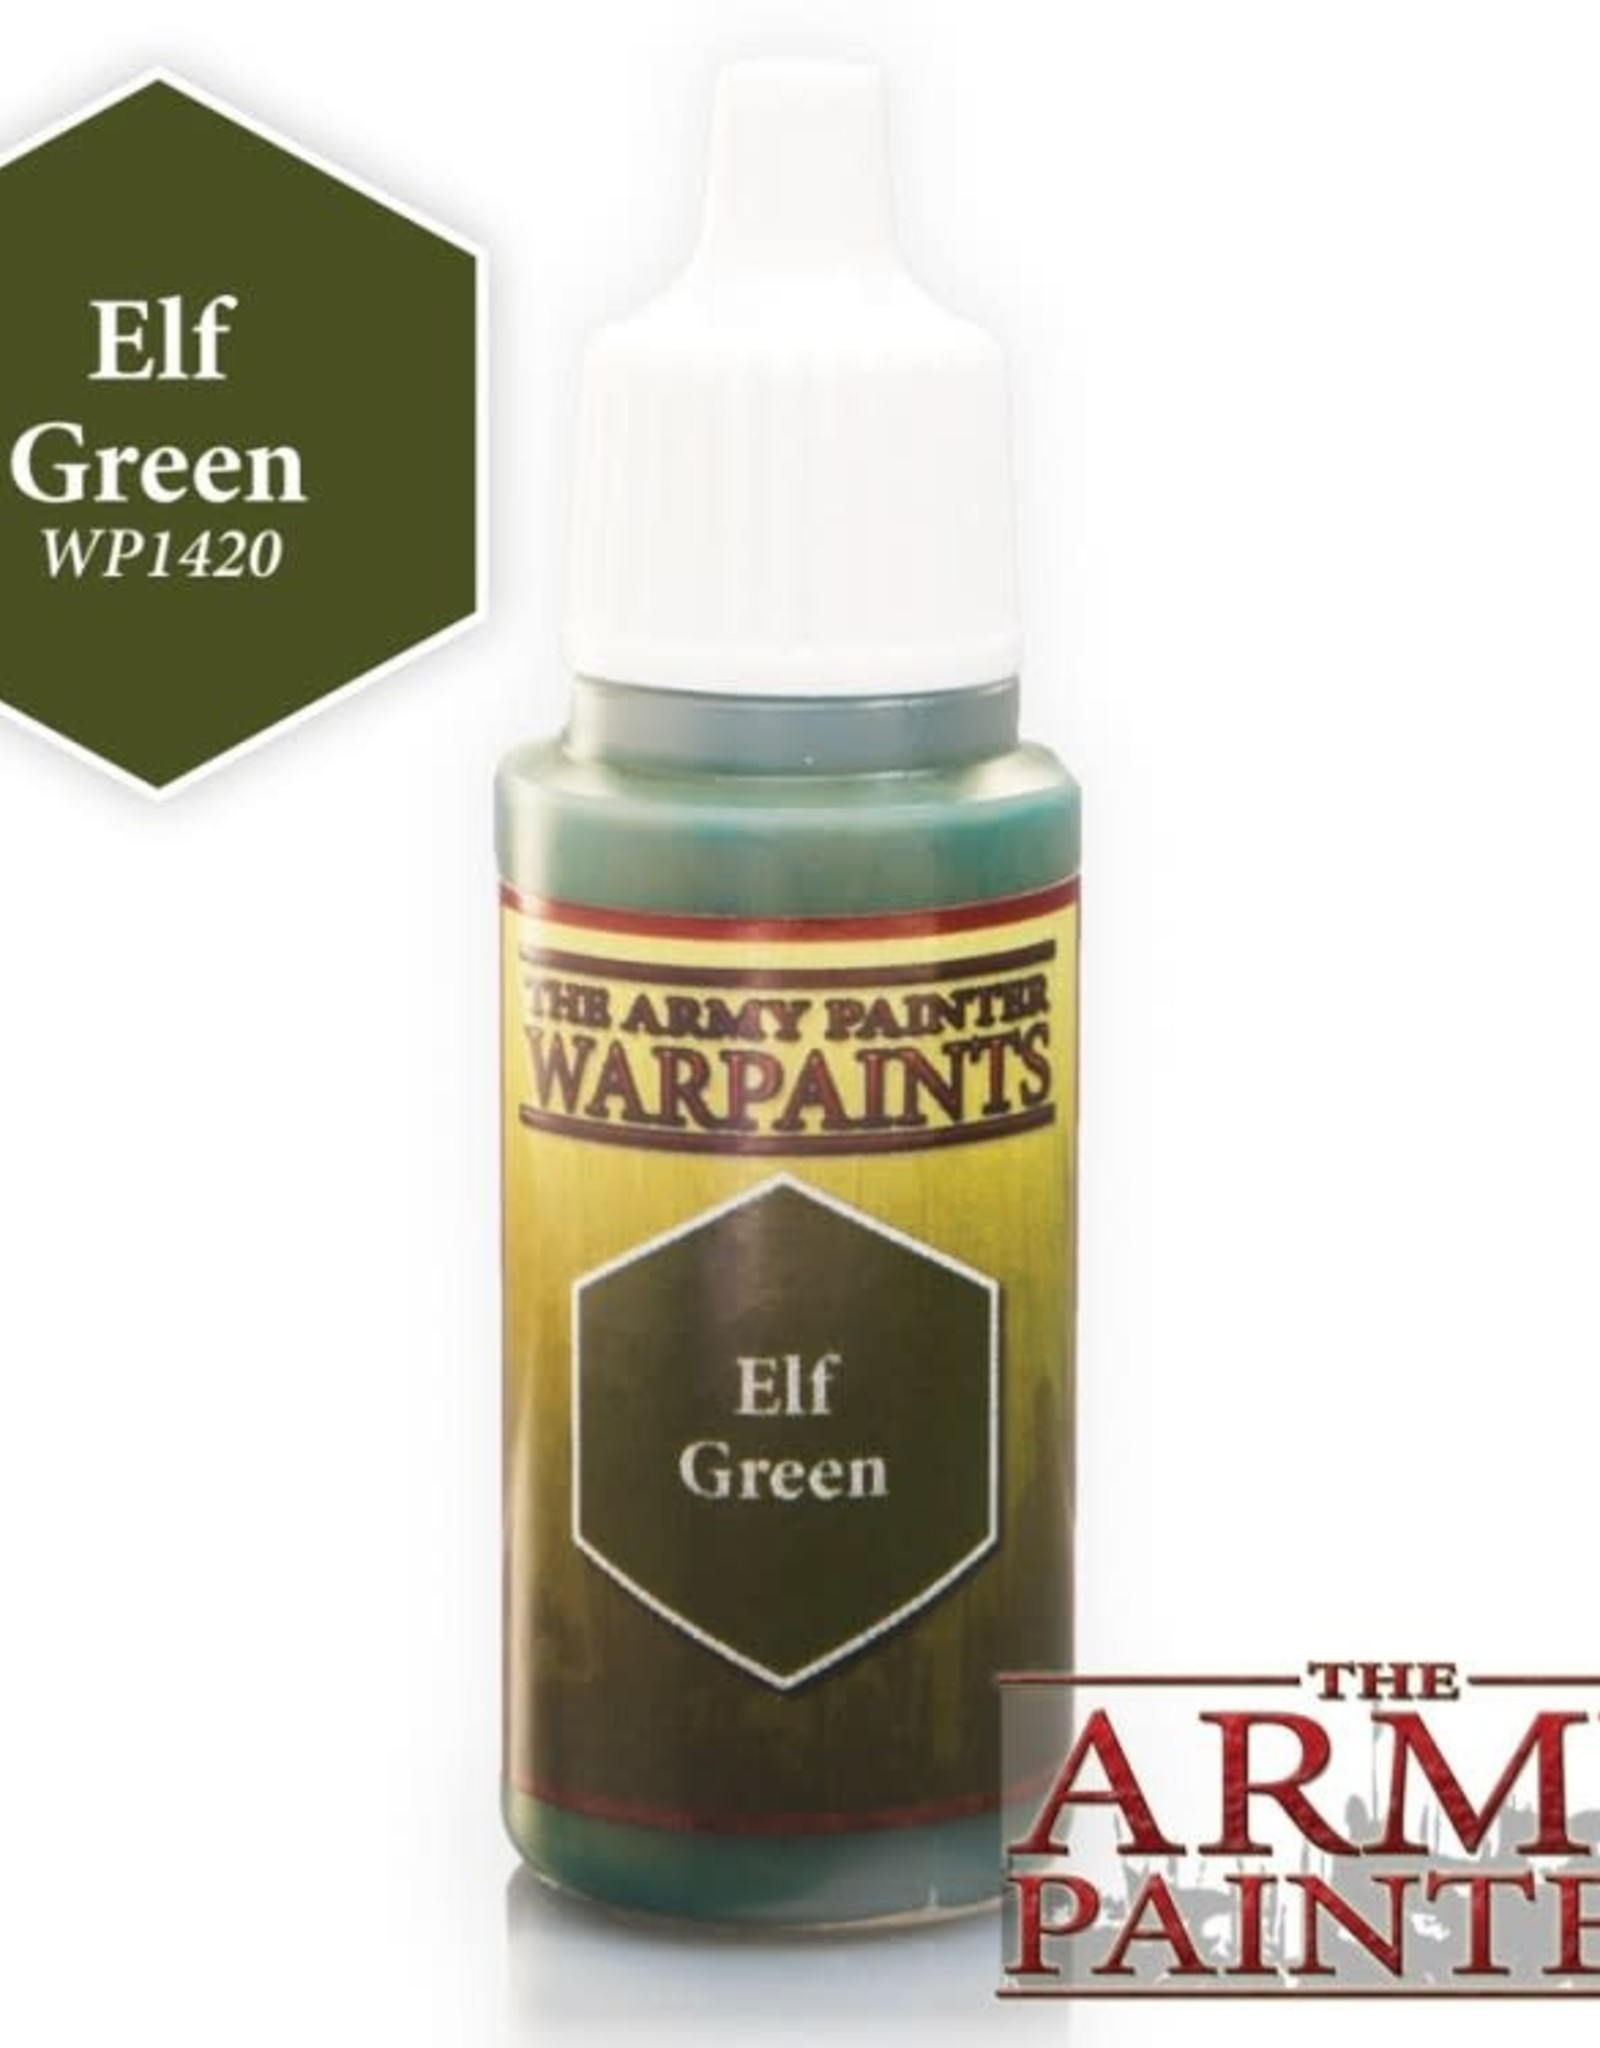 The Army Painter Warpaints - Elf Green